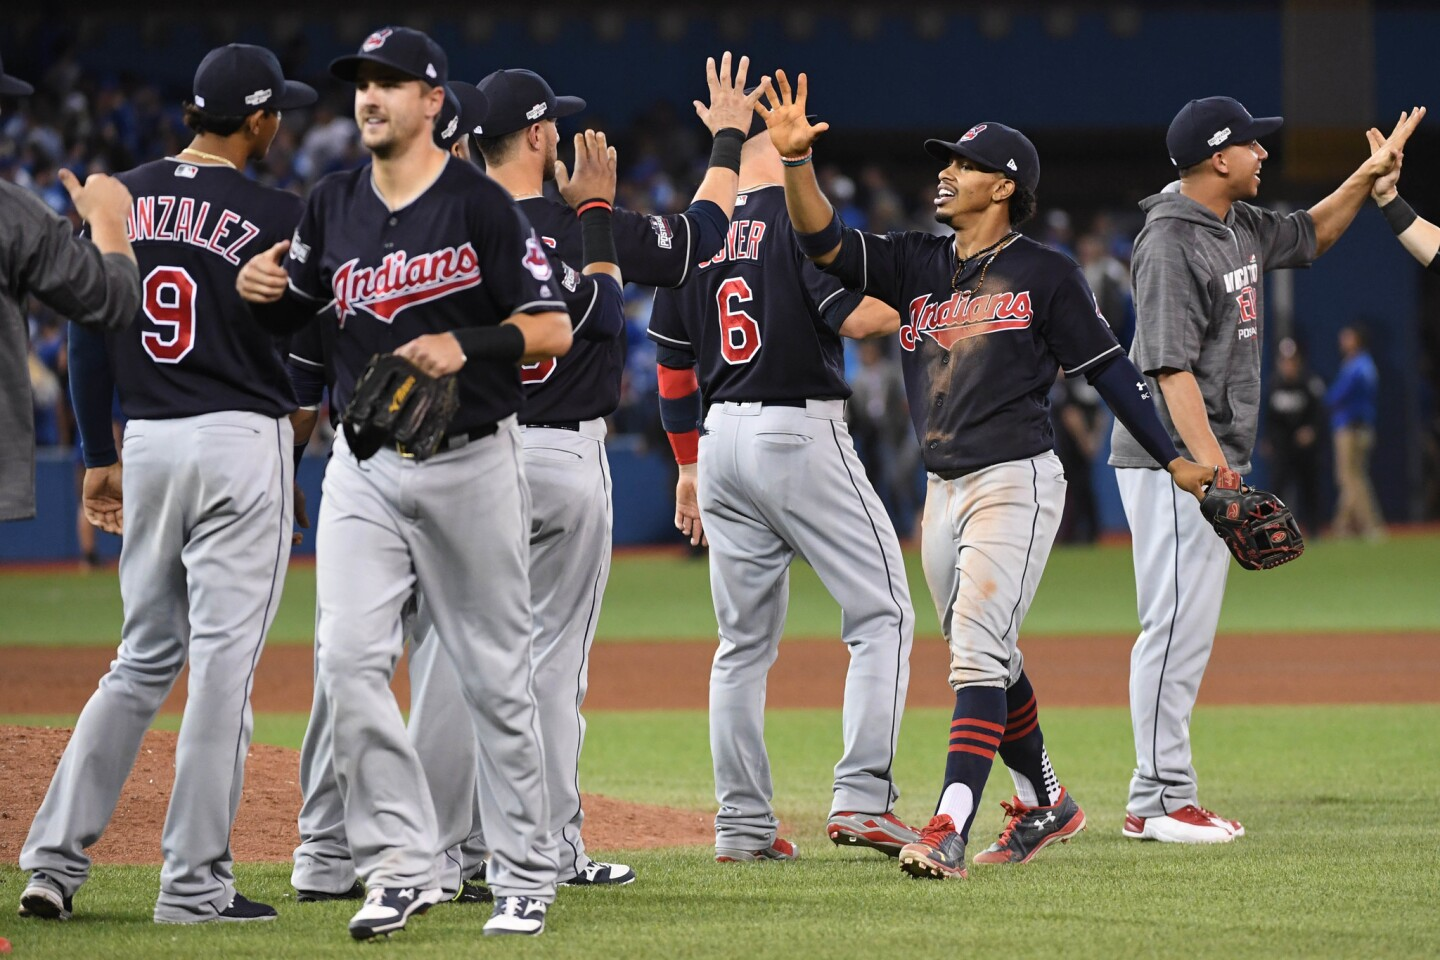 Oct 17, 2016; Toronto, Ontario, CAN; Cleveland Indians players celebrate after game three of the 2016 ALCS playoff baseball series against the Toronto Blue Jays at Rogers Centre. Mandatory Credit: Nick Turchiaro-USA TODAY Sports ** Usable by SD ONLY **